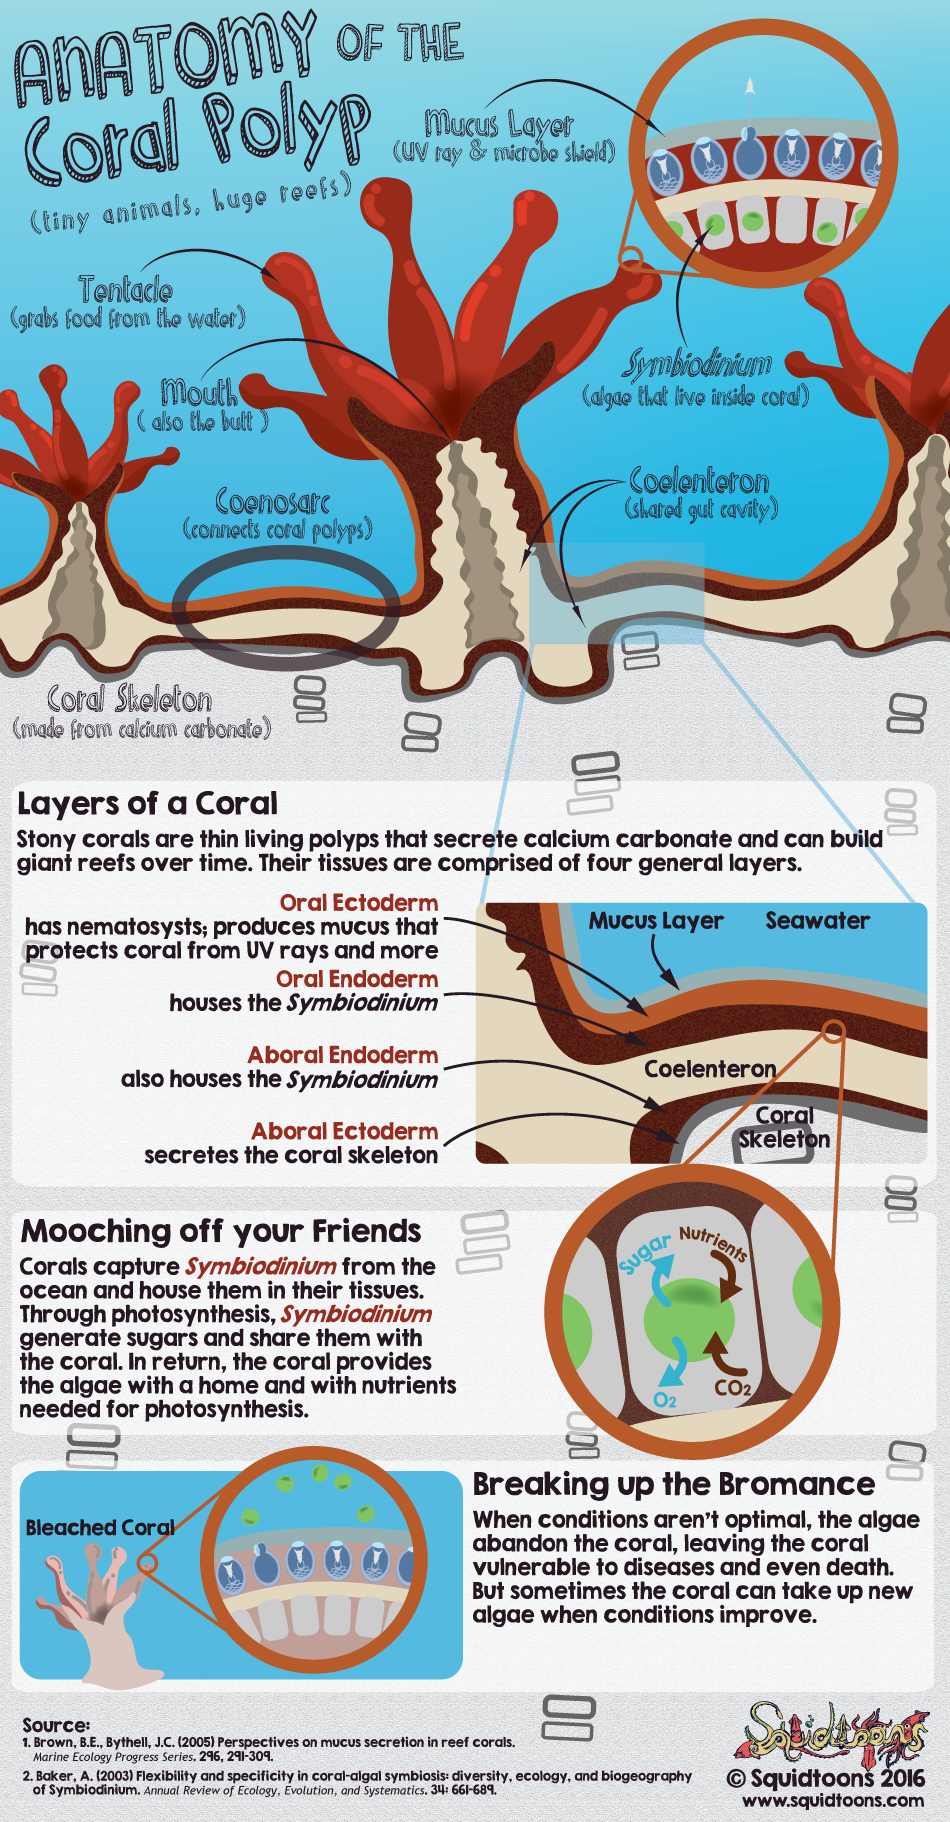 Anatomy Of The Coral Polyp Marine Biology Comics Pinterest